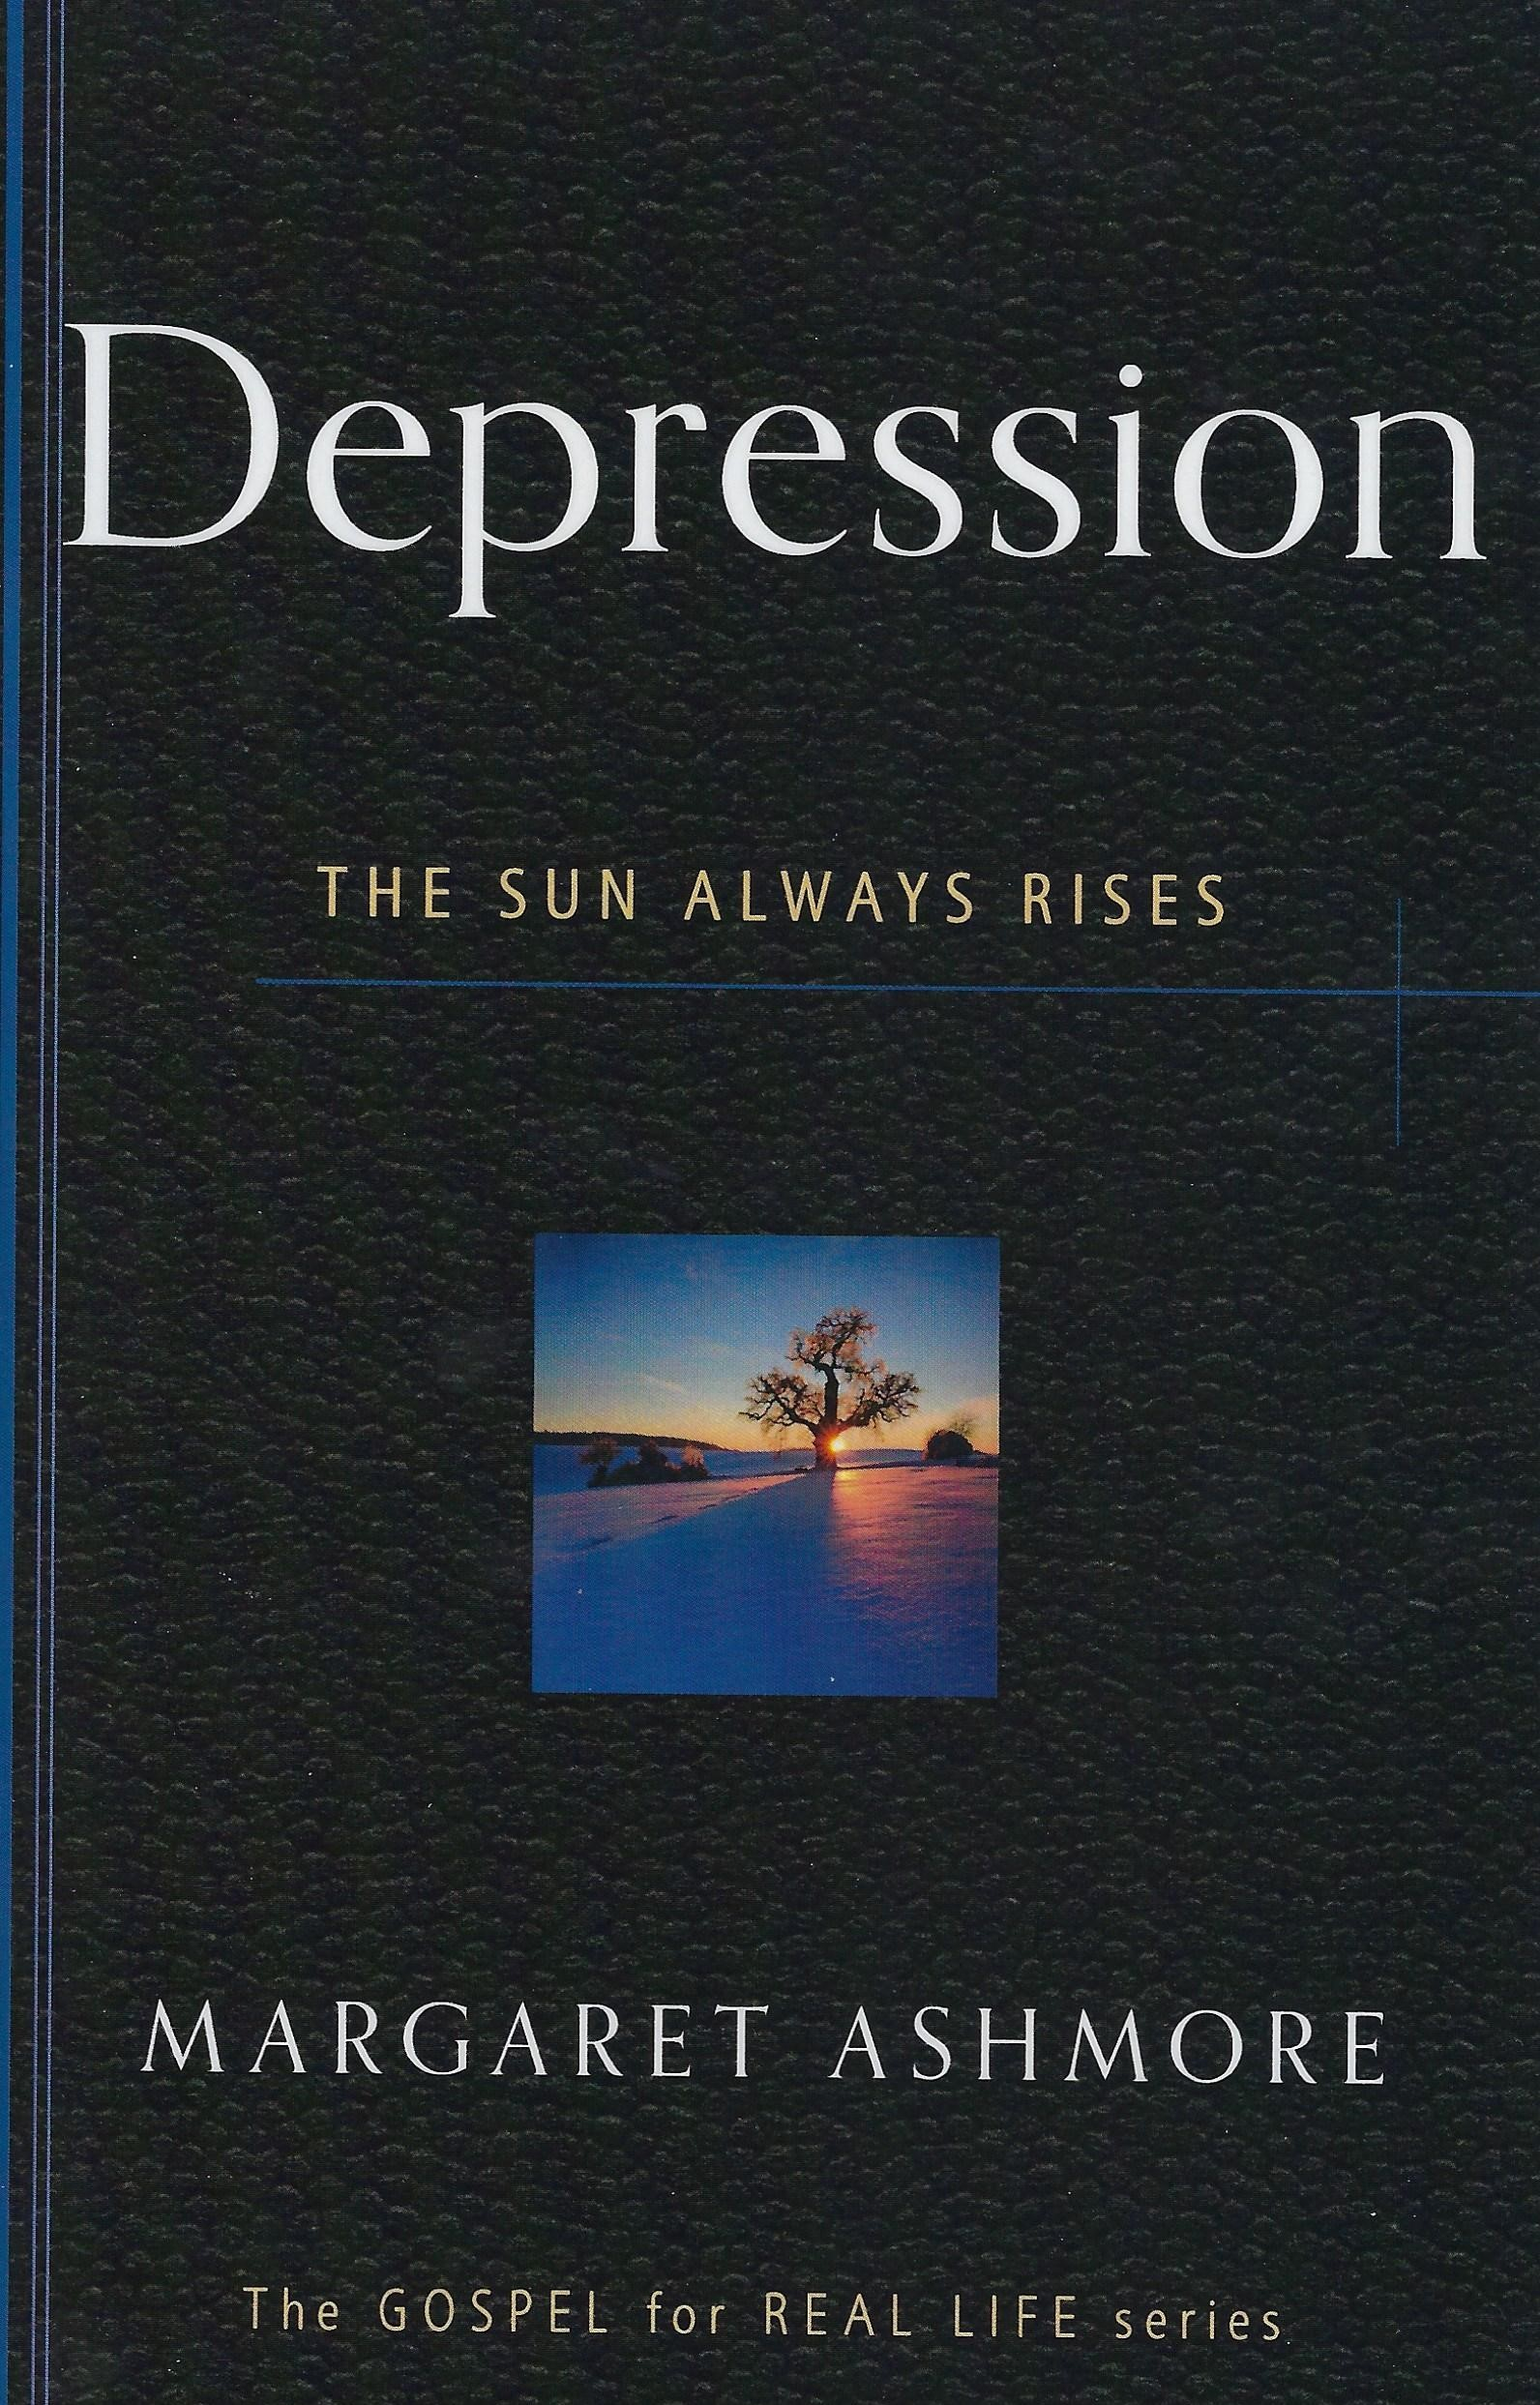 DEPRESSION - The Sun Always Rises Margaret Ashmore